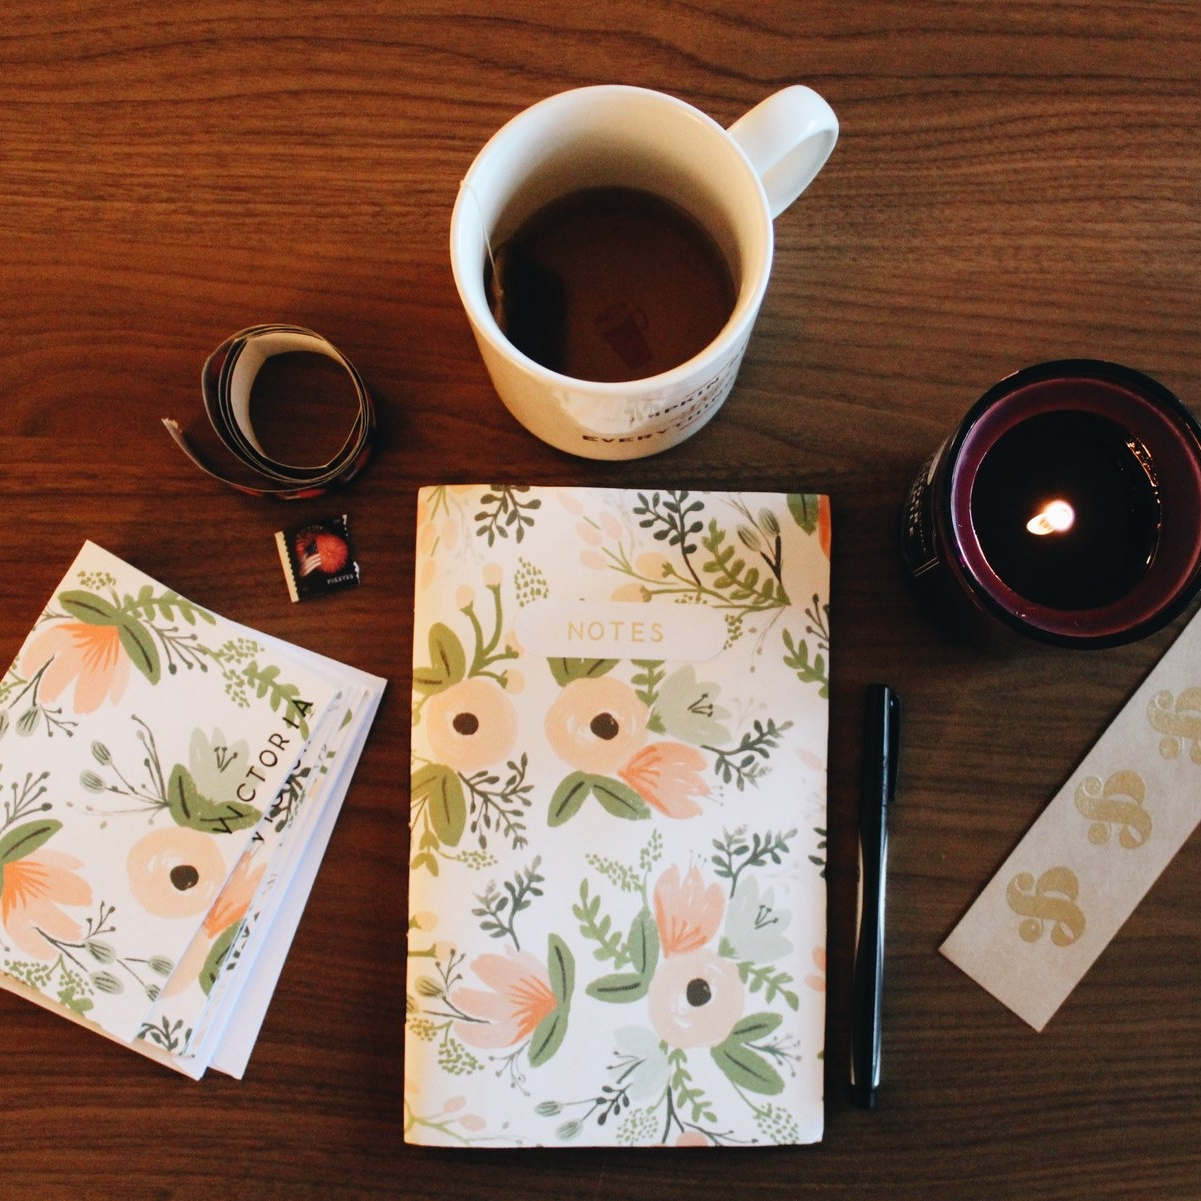 A Cozy Letter Writing Afternoon - A Collaboration with English Country Press, October 2016